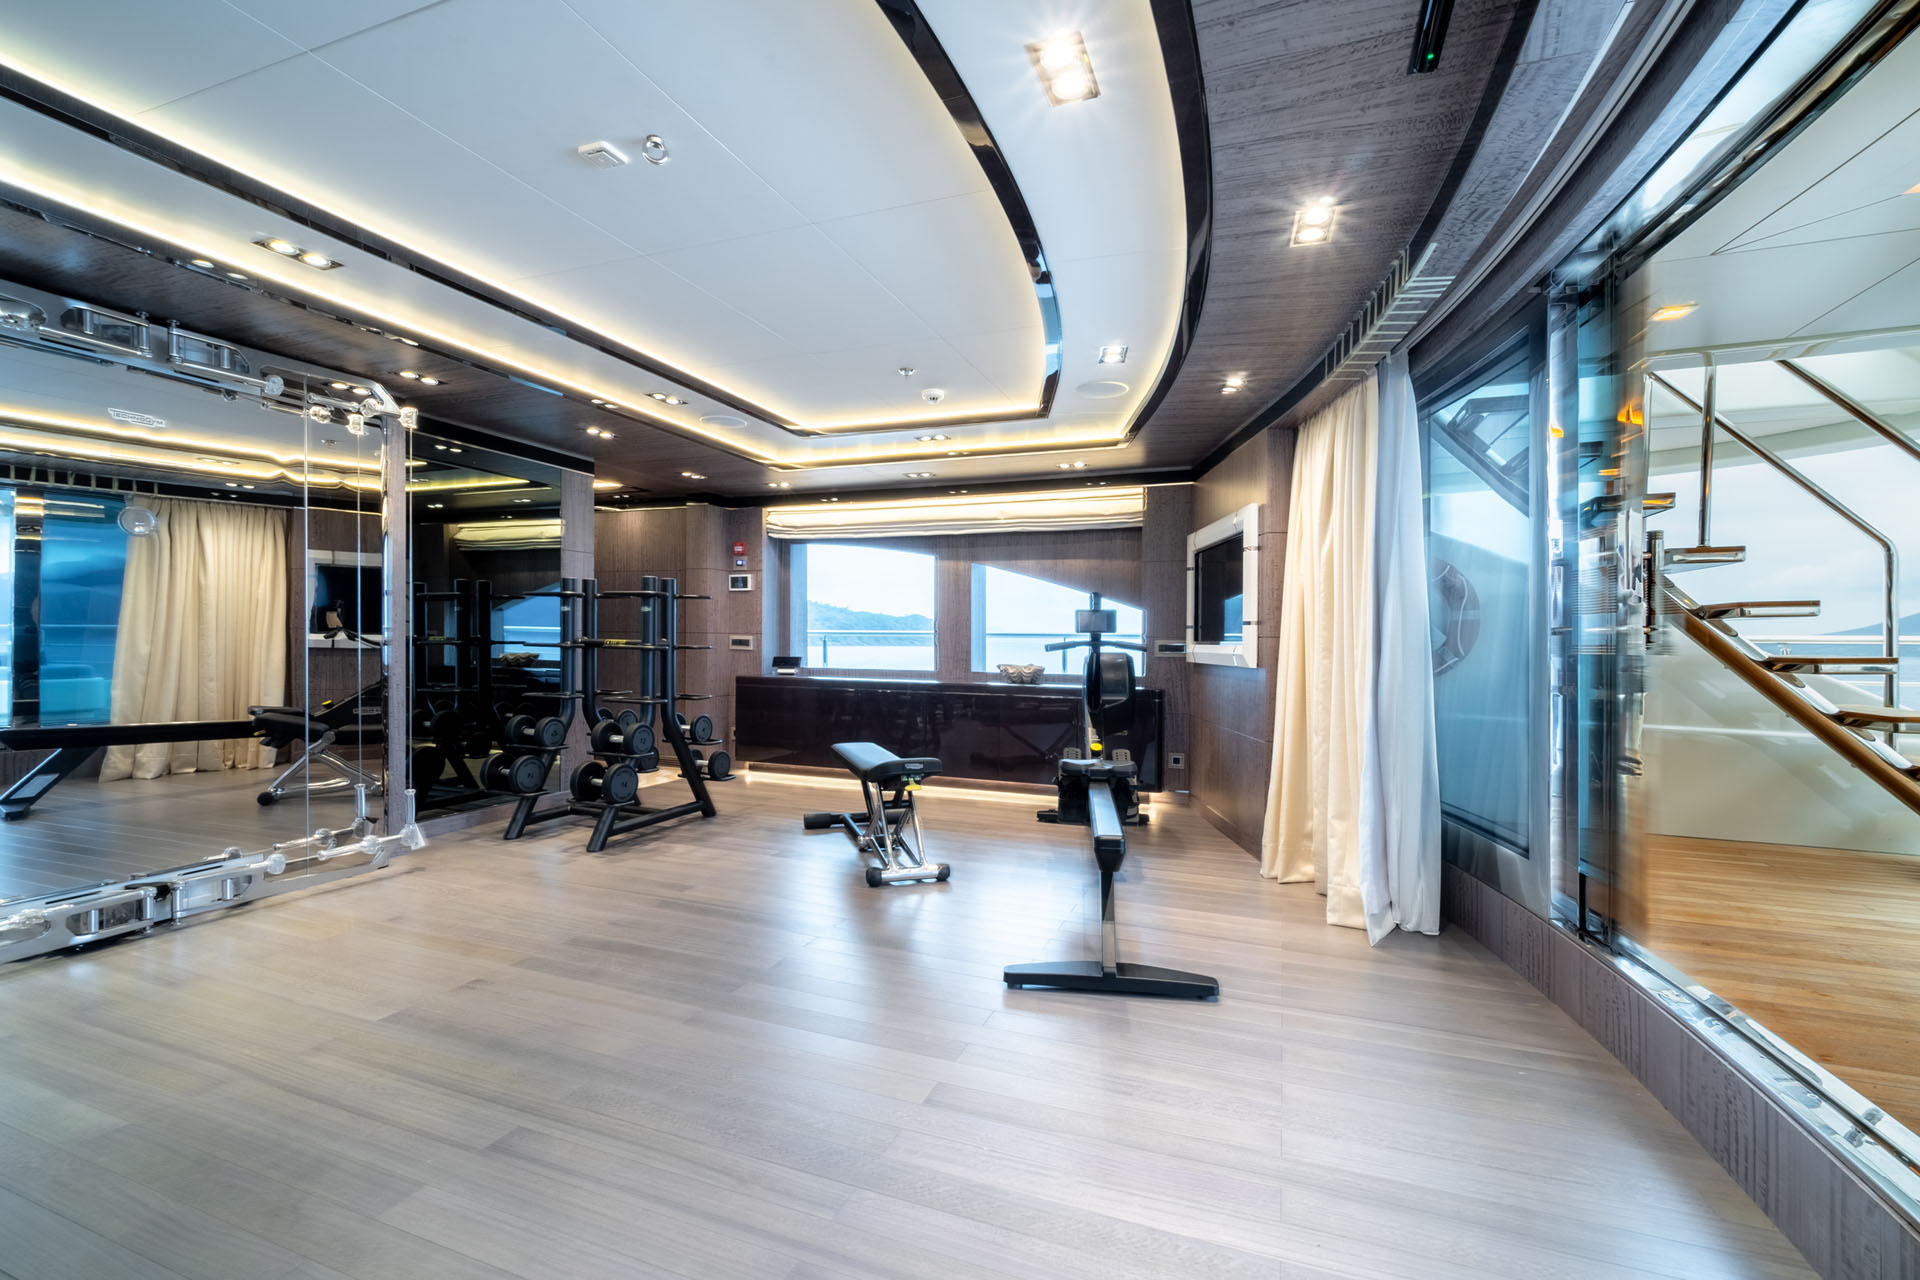 Gym With Fantastic Views On Mega Yacht